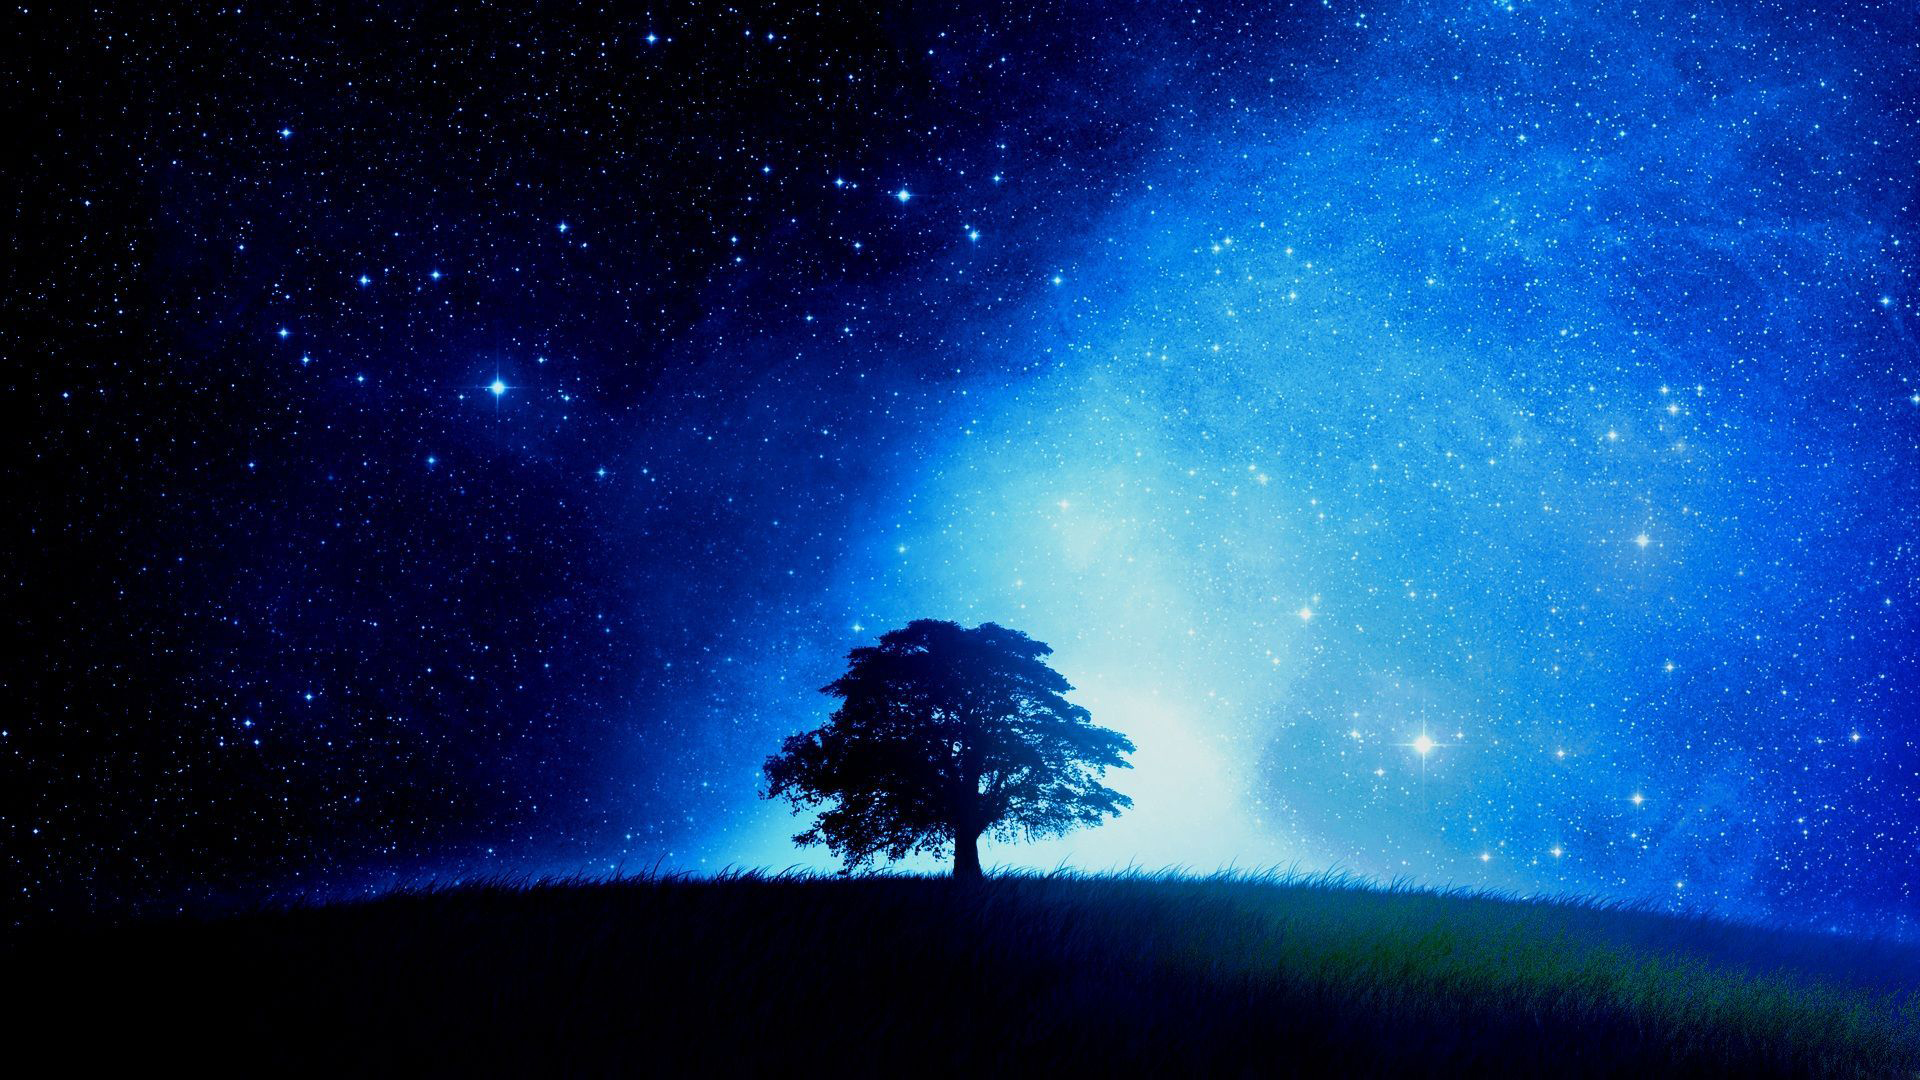 Free Desktop Starry Night Wallpaper Pixelstalk Net